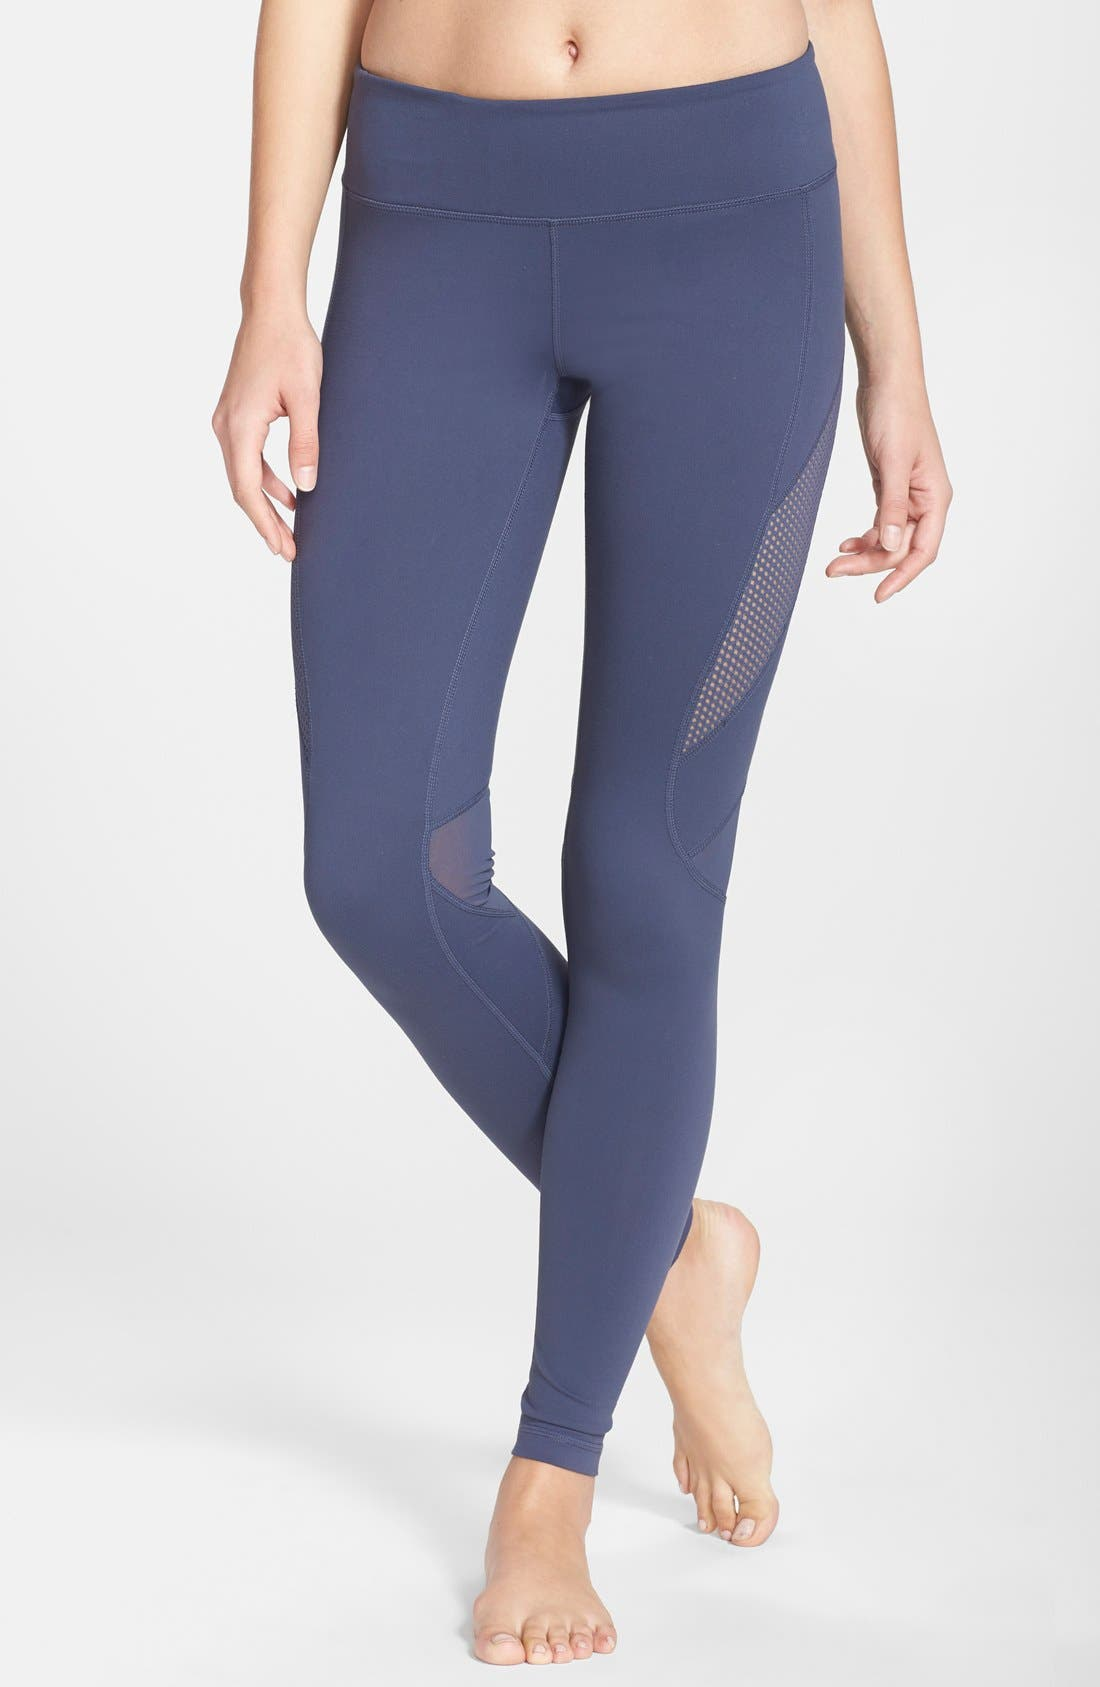 Main Image - Zella 'Optic Mesh' Leggings